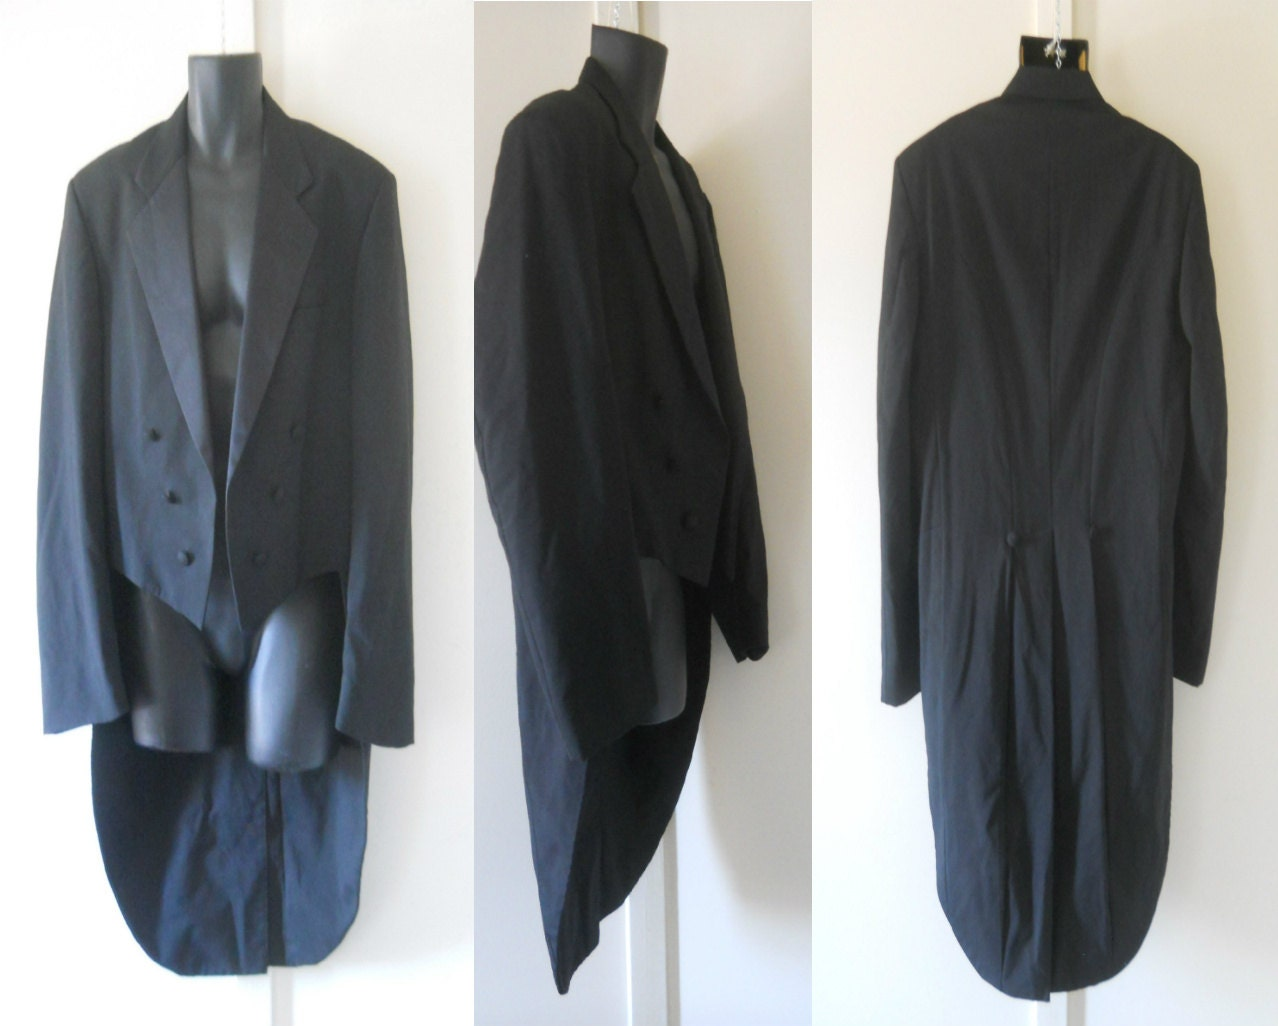 Mens Tuxedo Jacket With Tails